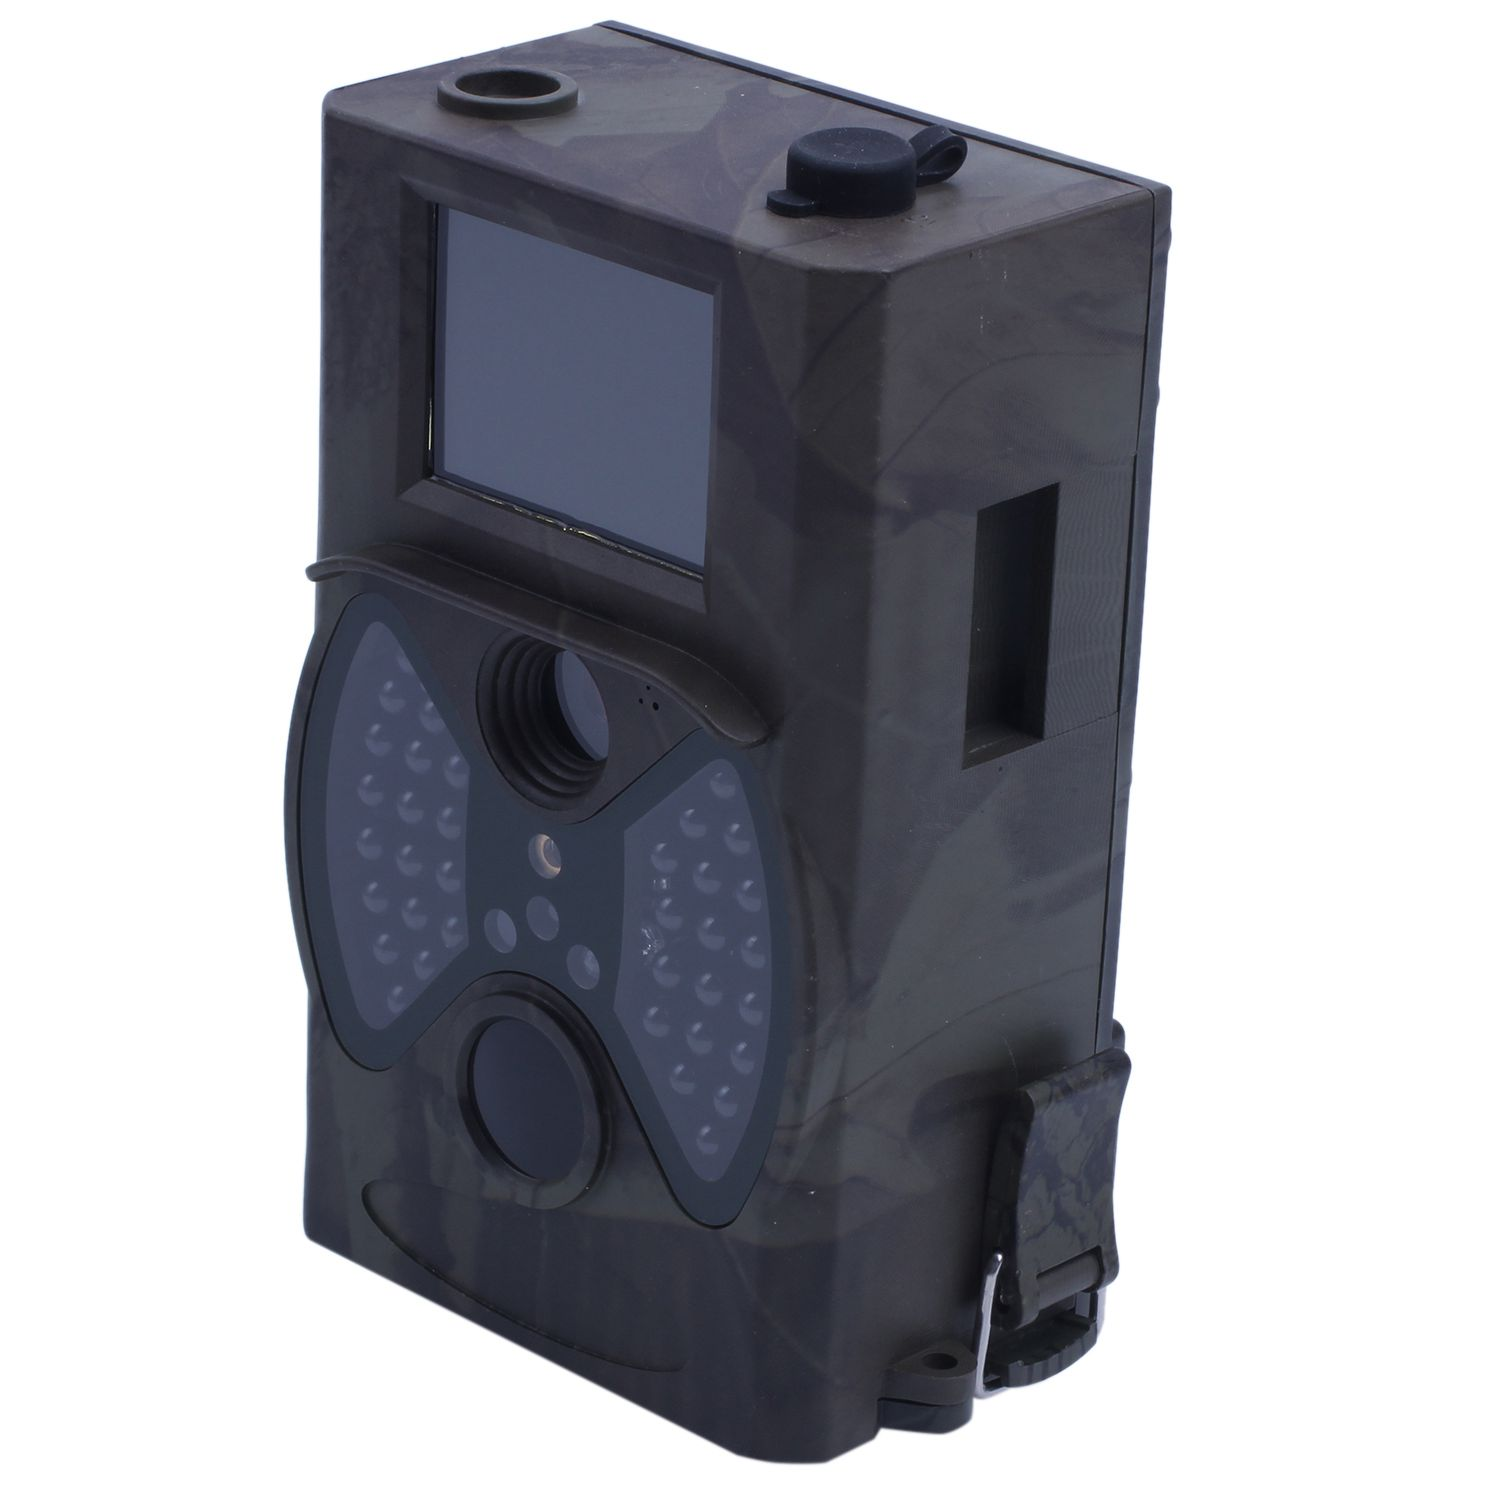 HC-300A Outdoor 2 inch TFT IR Hunting Camera Digital Trail 5MP Color CMOS IP54HC-300A Outdoor 2 inch TFT IR Hunting Camera Digital Trail 5MP Color CMOS IP54